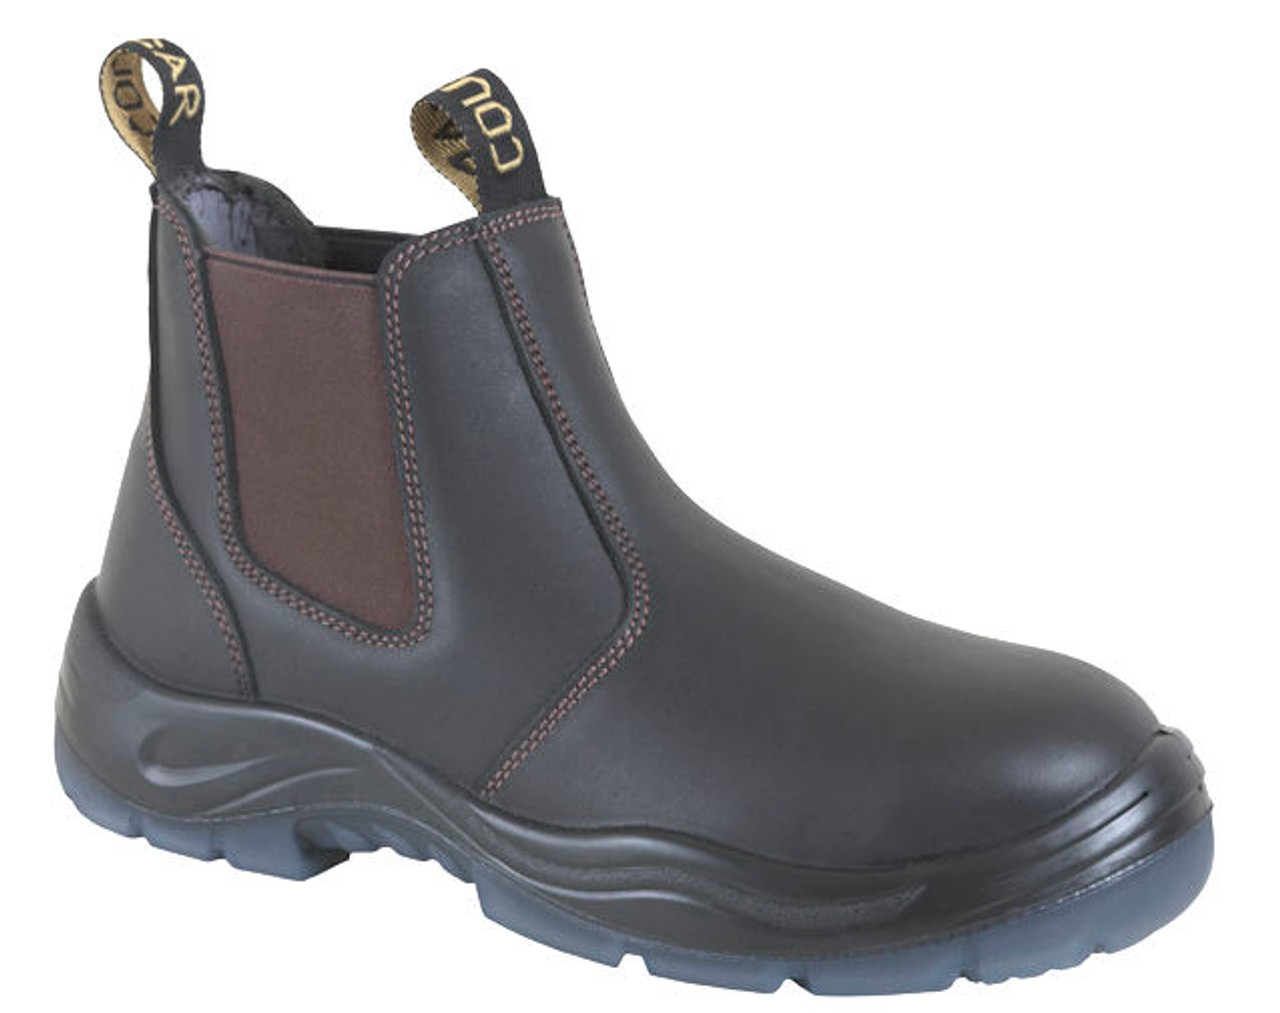 8bcddb8c1e6 Cougar Jersey Elastic Sided Work Boots Non Safety